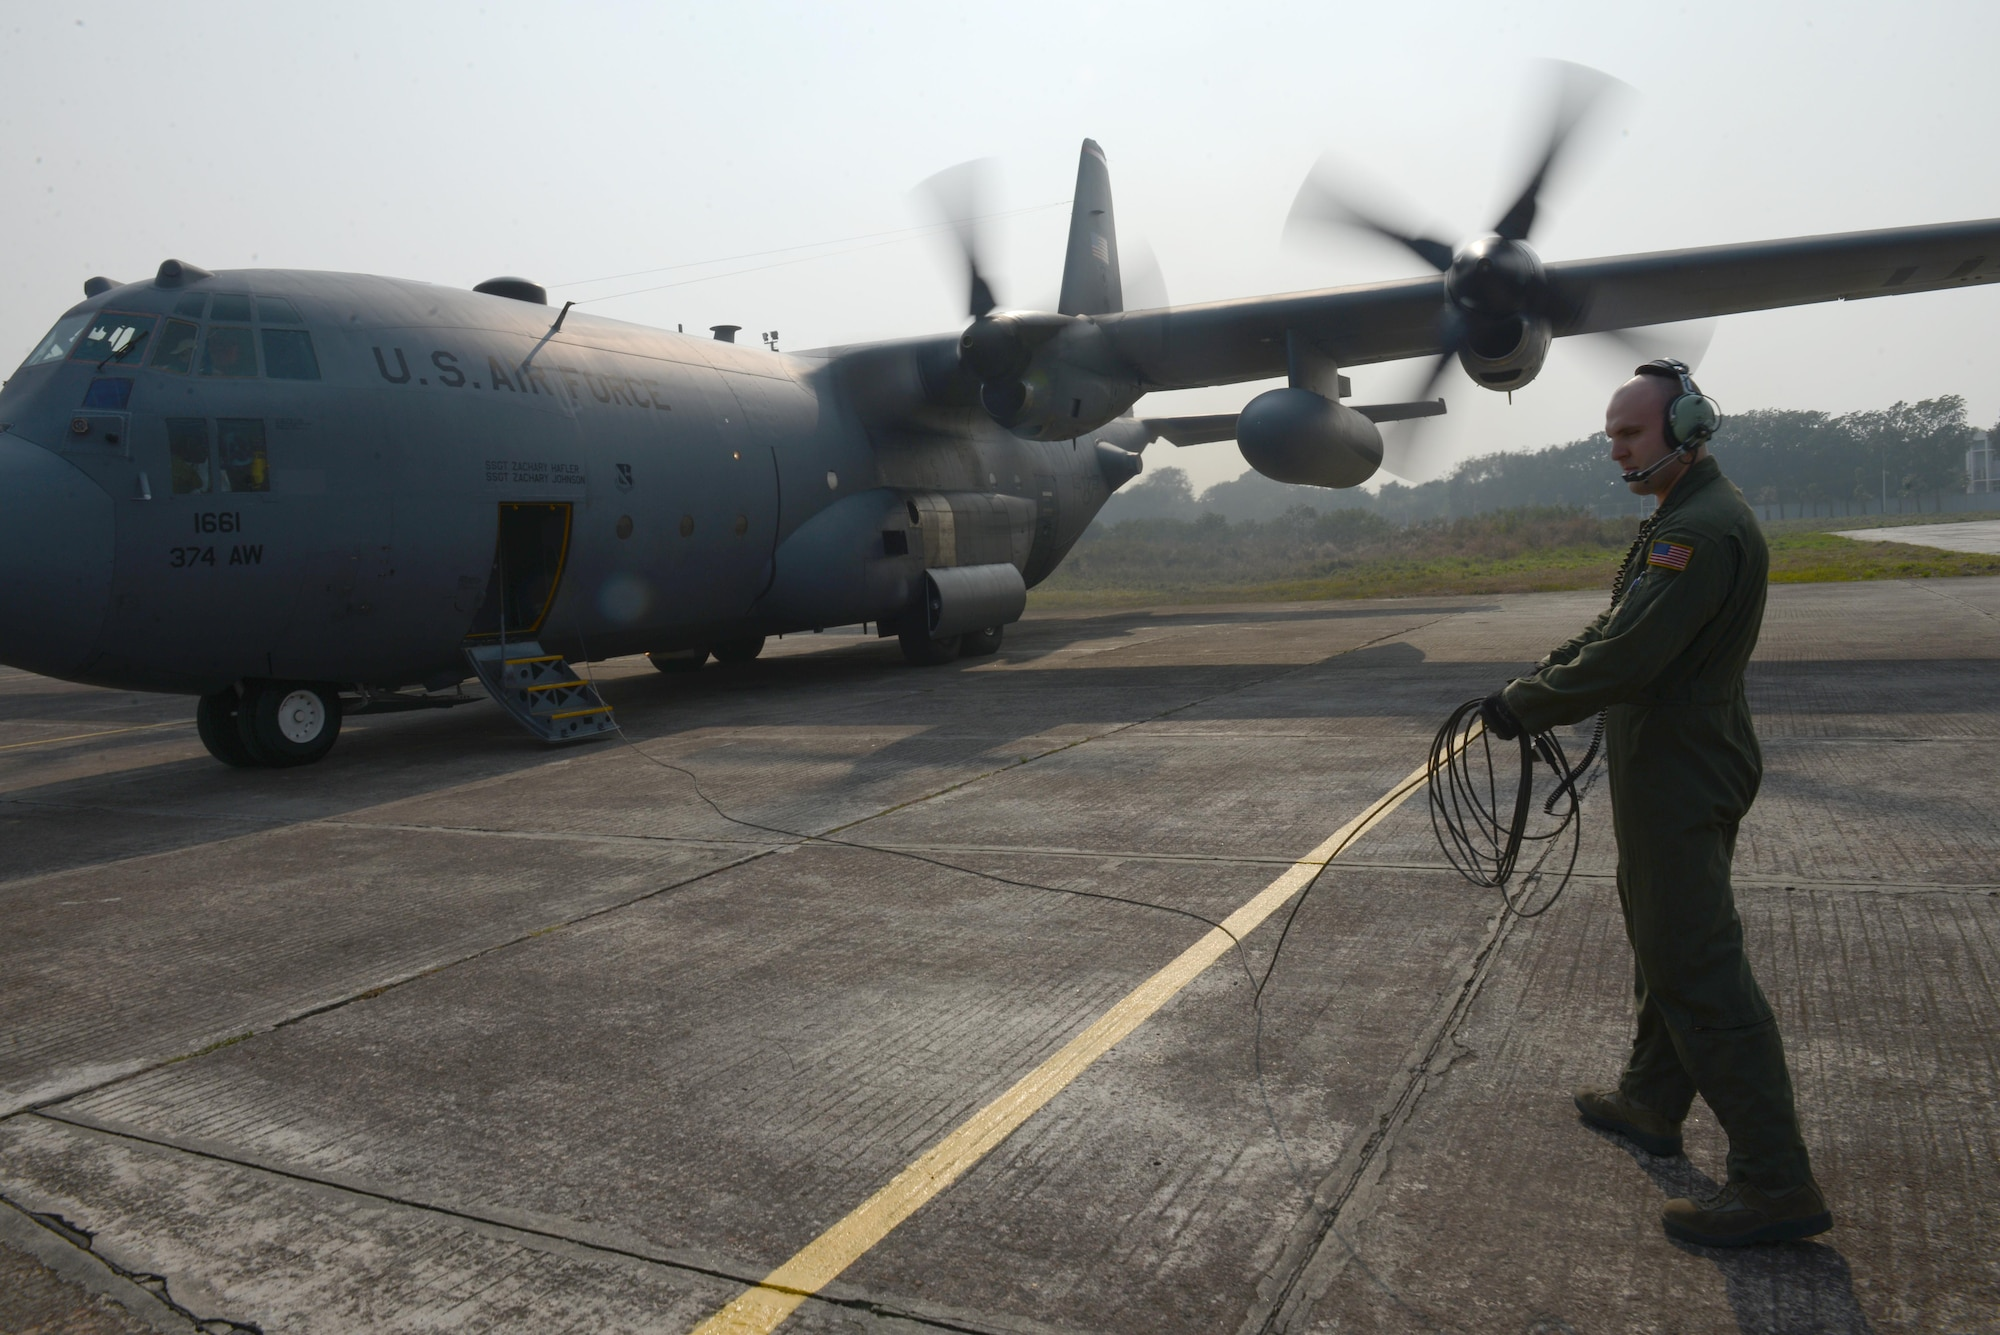 Staff Sgt. Noel Jones prepares to board a C-130H aircraft after engines start Jan. 24, 2015 during exercise Cope South at Bangladesh air force base, Bangabandhu, Bangladesh. Cope South helps cultivate common bonds, foster goodwill, and improve readiness and compatibility between members of the Bangladesh and U.S. Air Forces. Jones is a loadmaster assigned to the 36th Airlift Squadron, Yokota Air Base, Japan.  (U.S. Air Force photo/1st Lt. Jake Bailey)